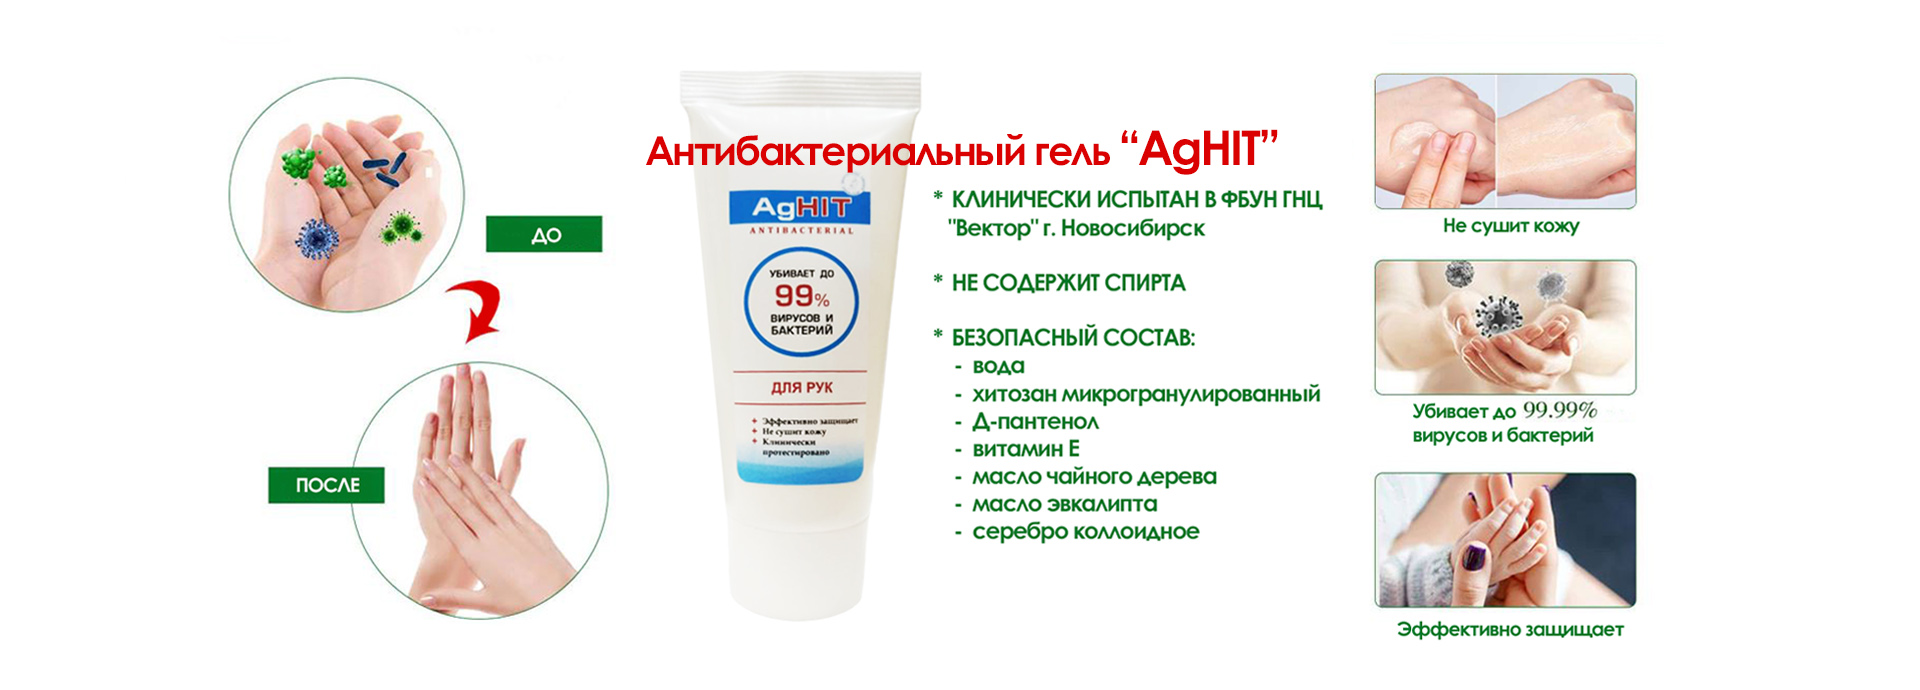 AgHIT_1